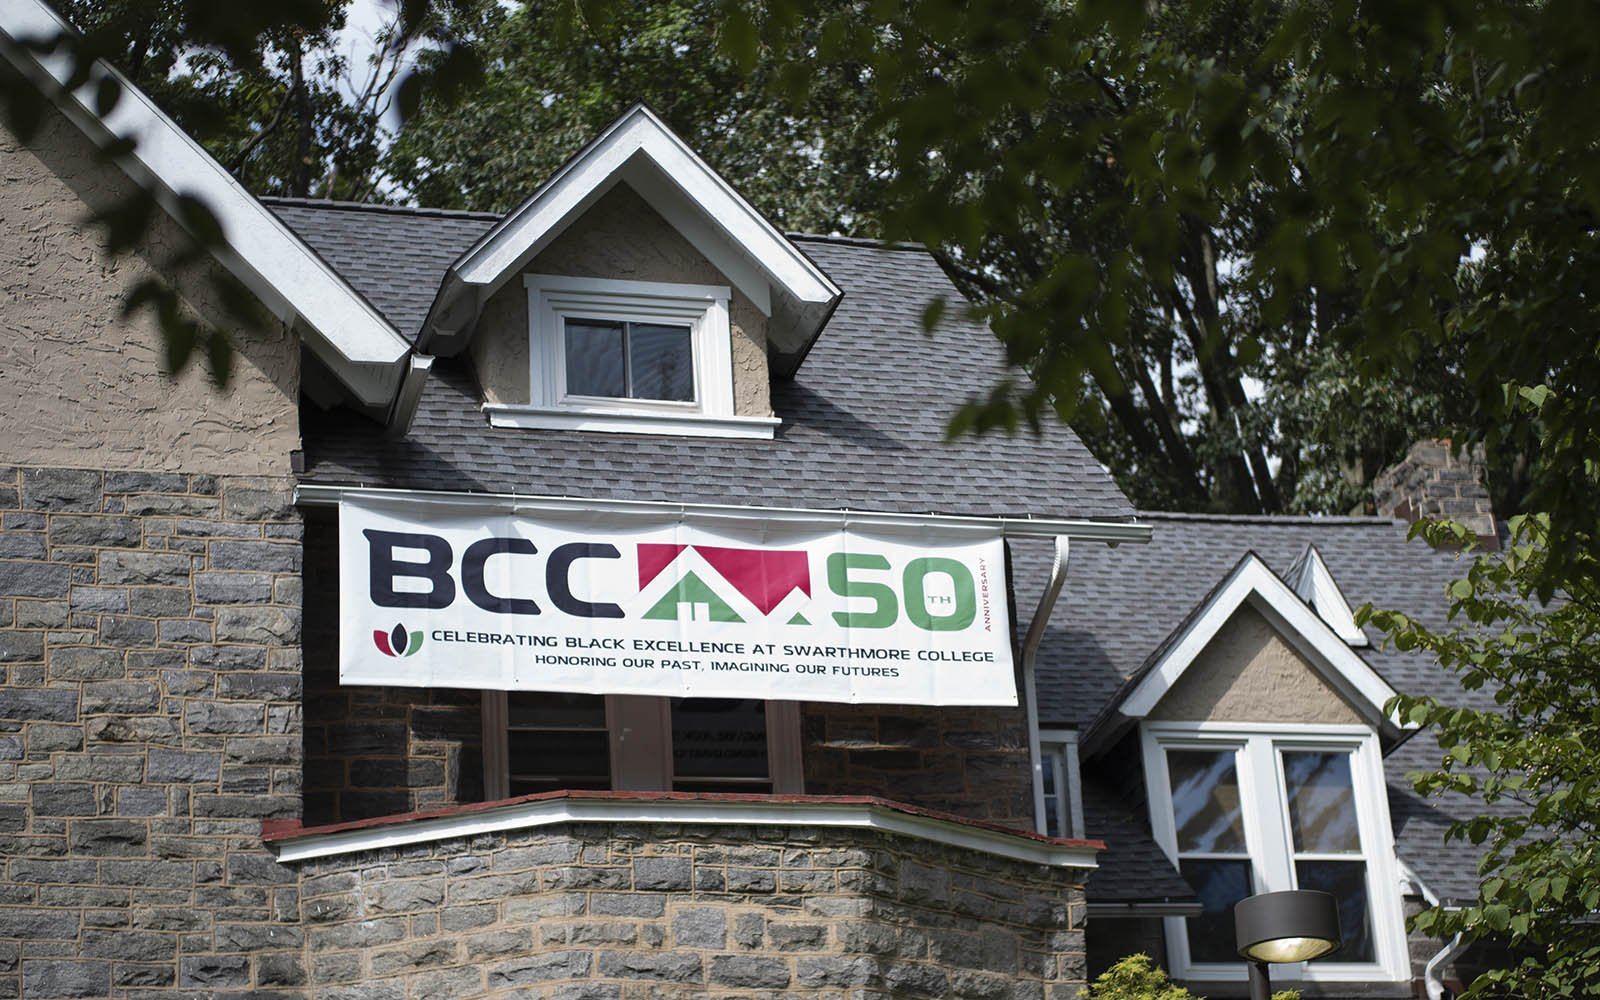 Celebrating Black Excellence sign hangs over Robinson House